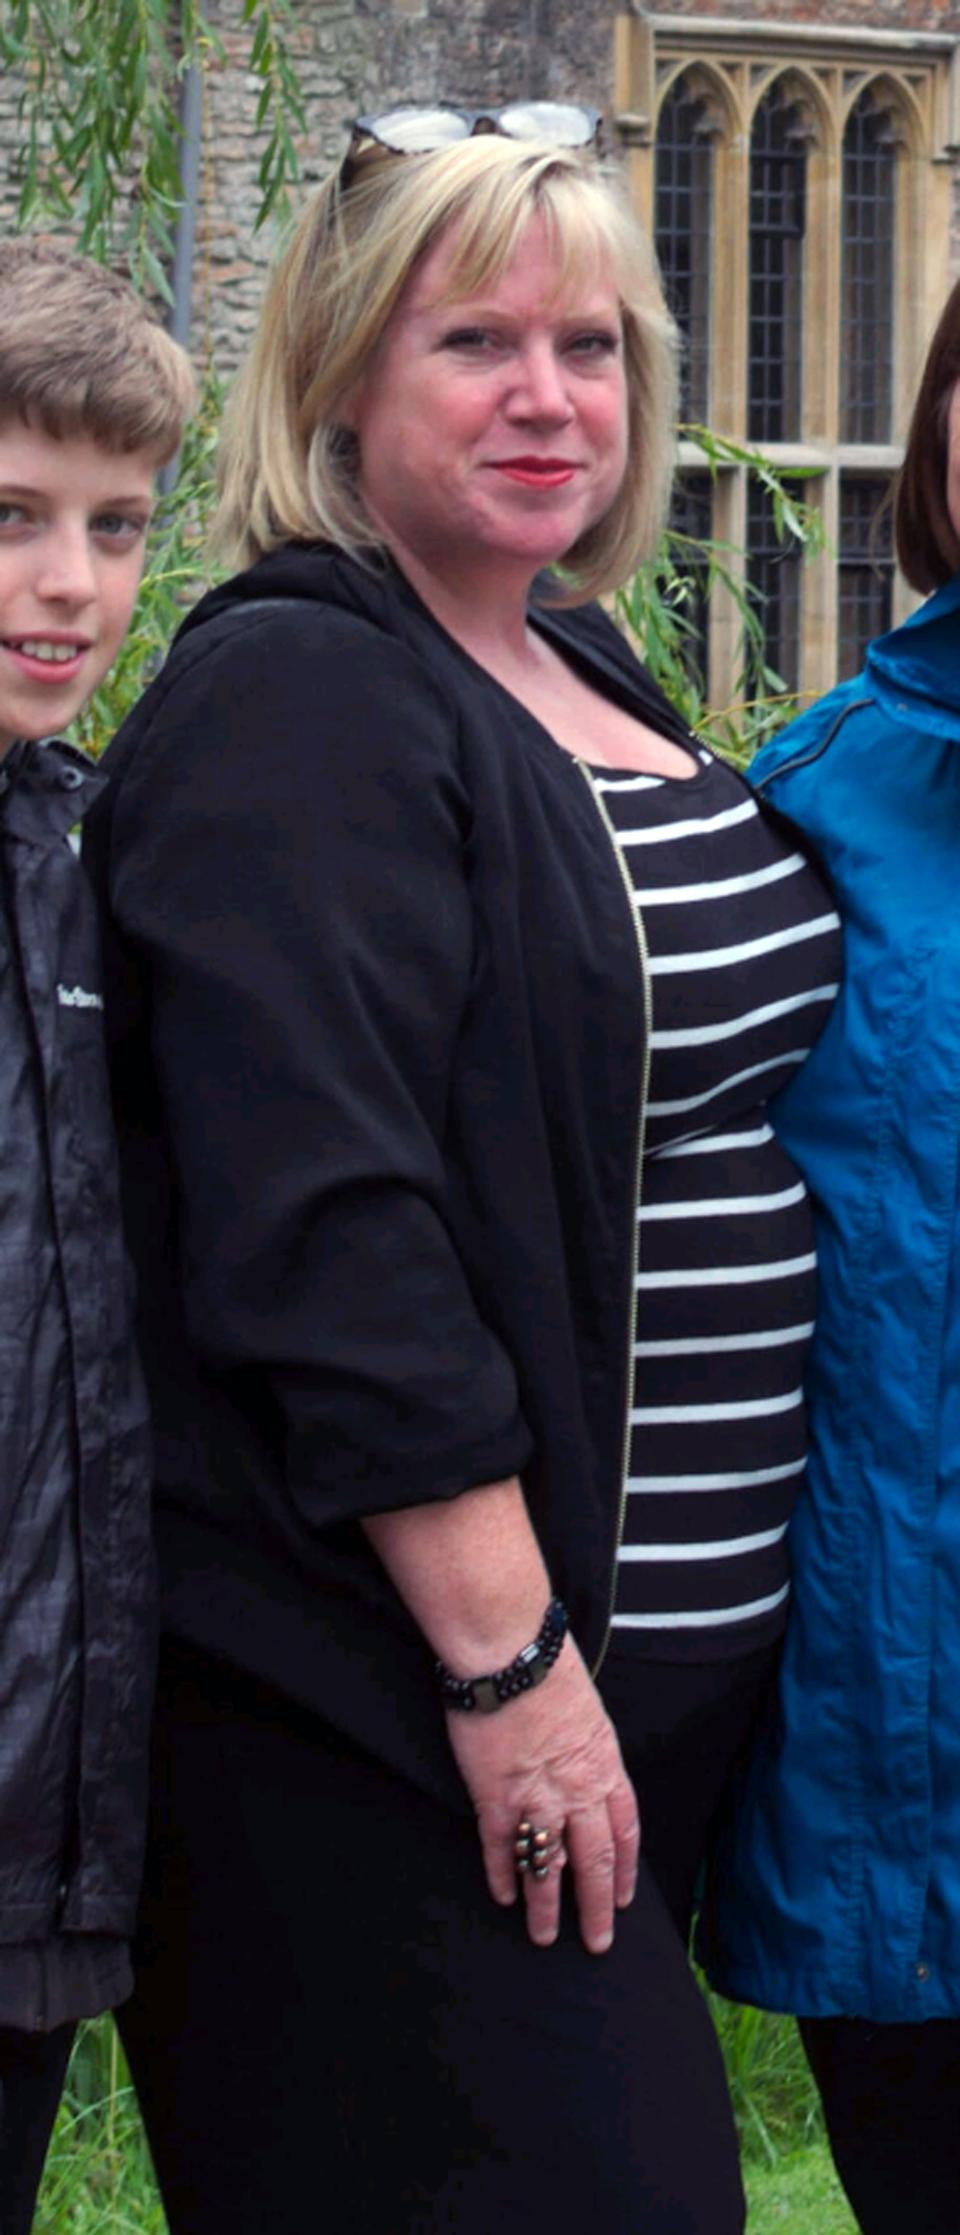 Paula Denyer weighed 19 stone at her mother's funeral [Photo: Caters]